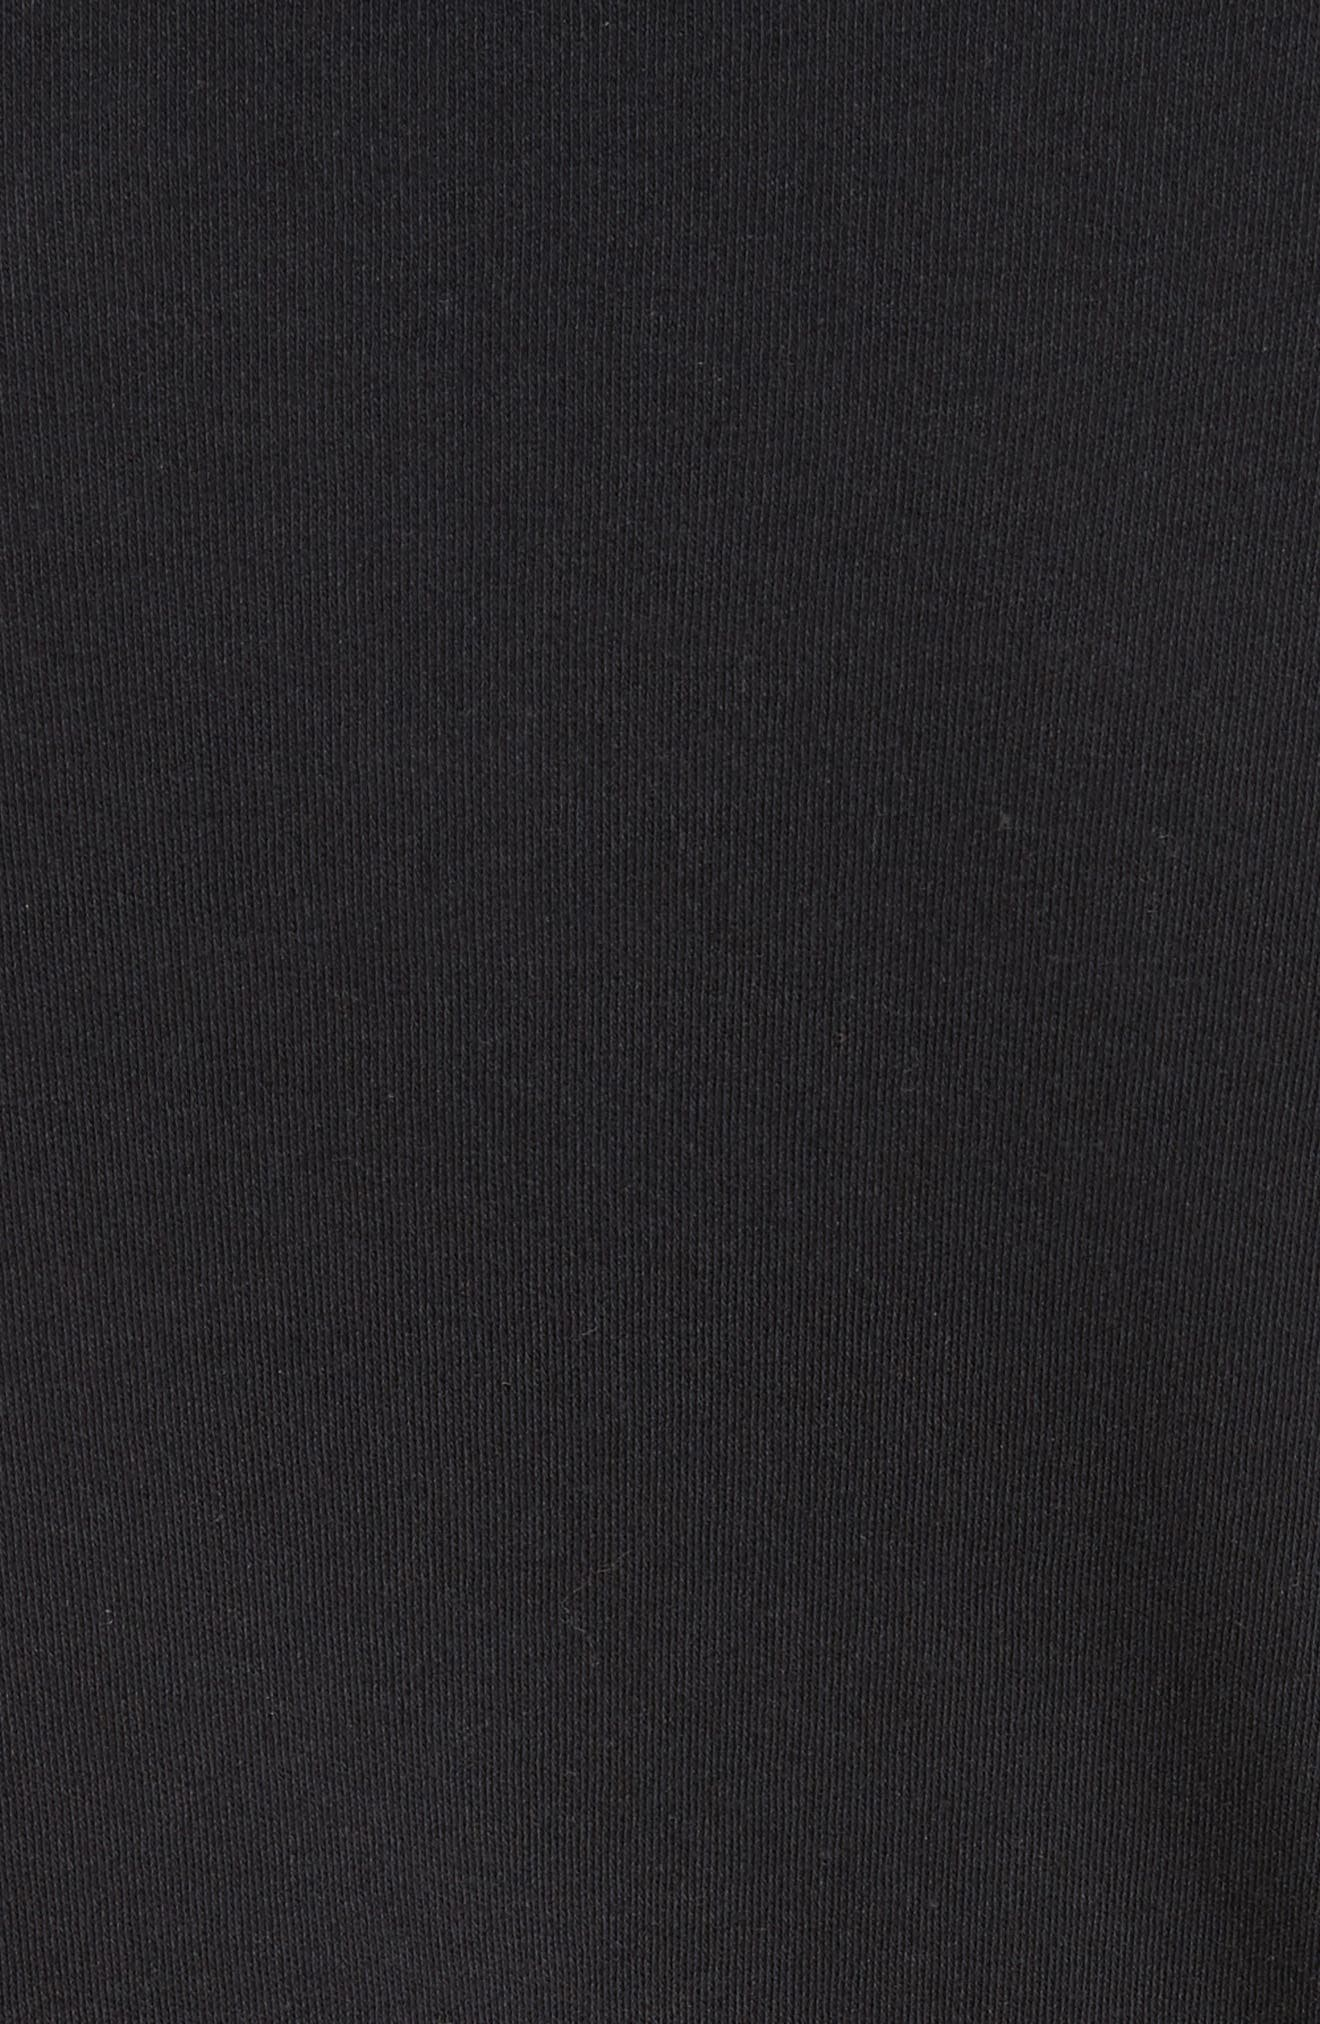 PSWL Back Button Henley,                             Alternate thumbnail 5, color,                             BLACK